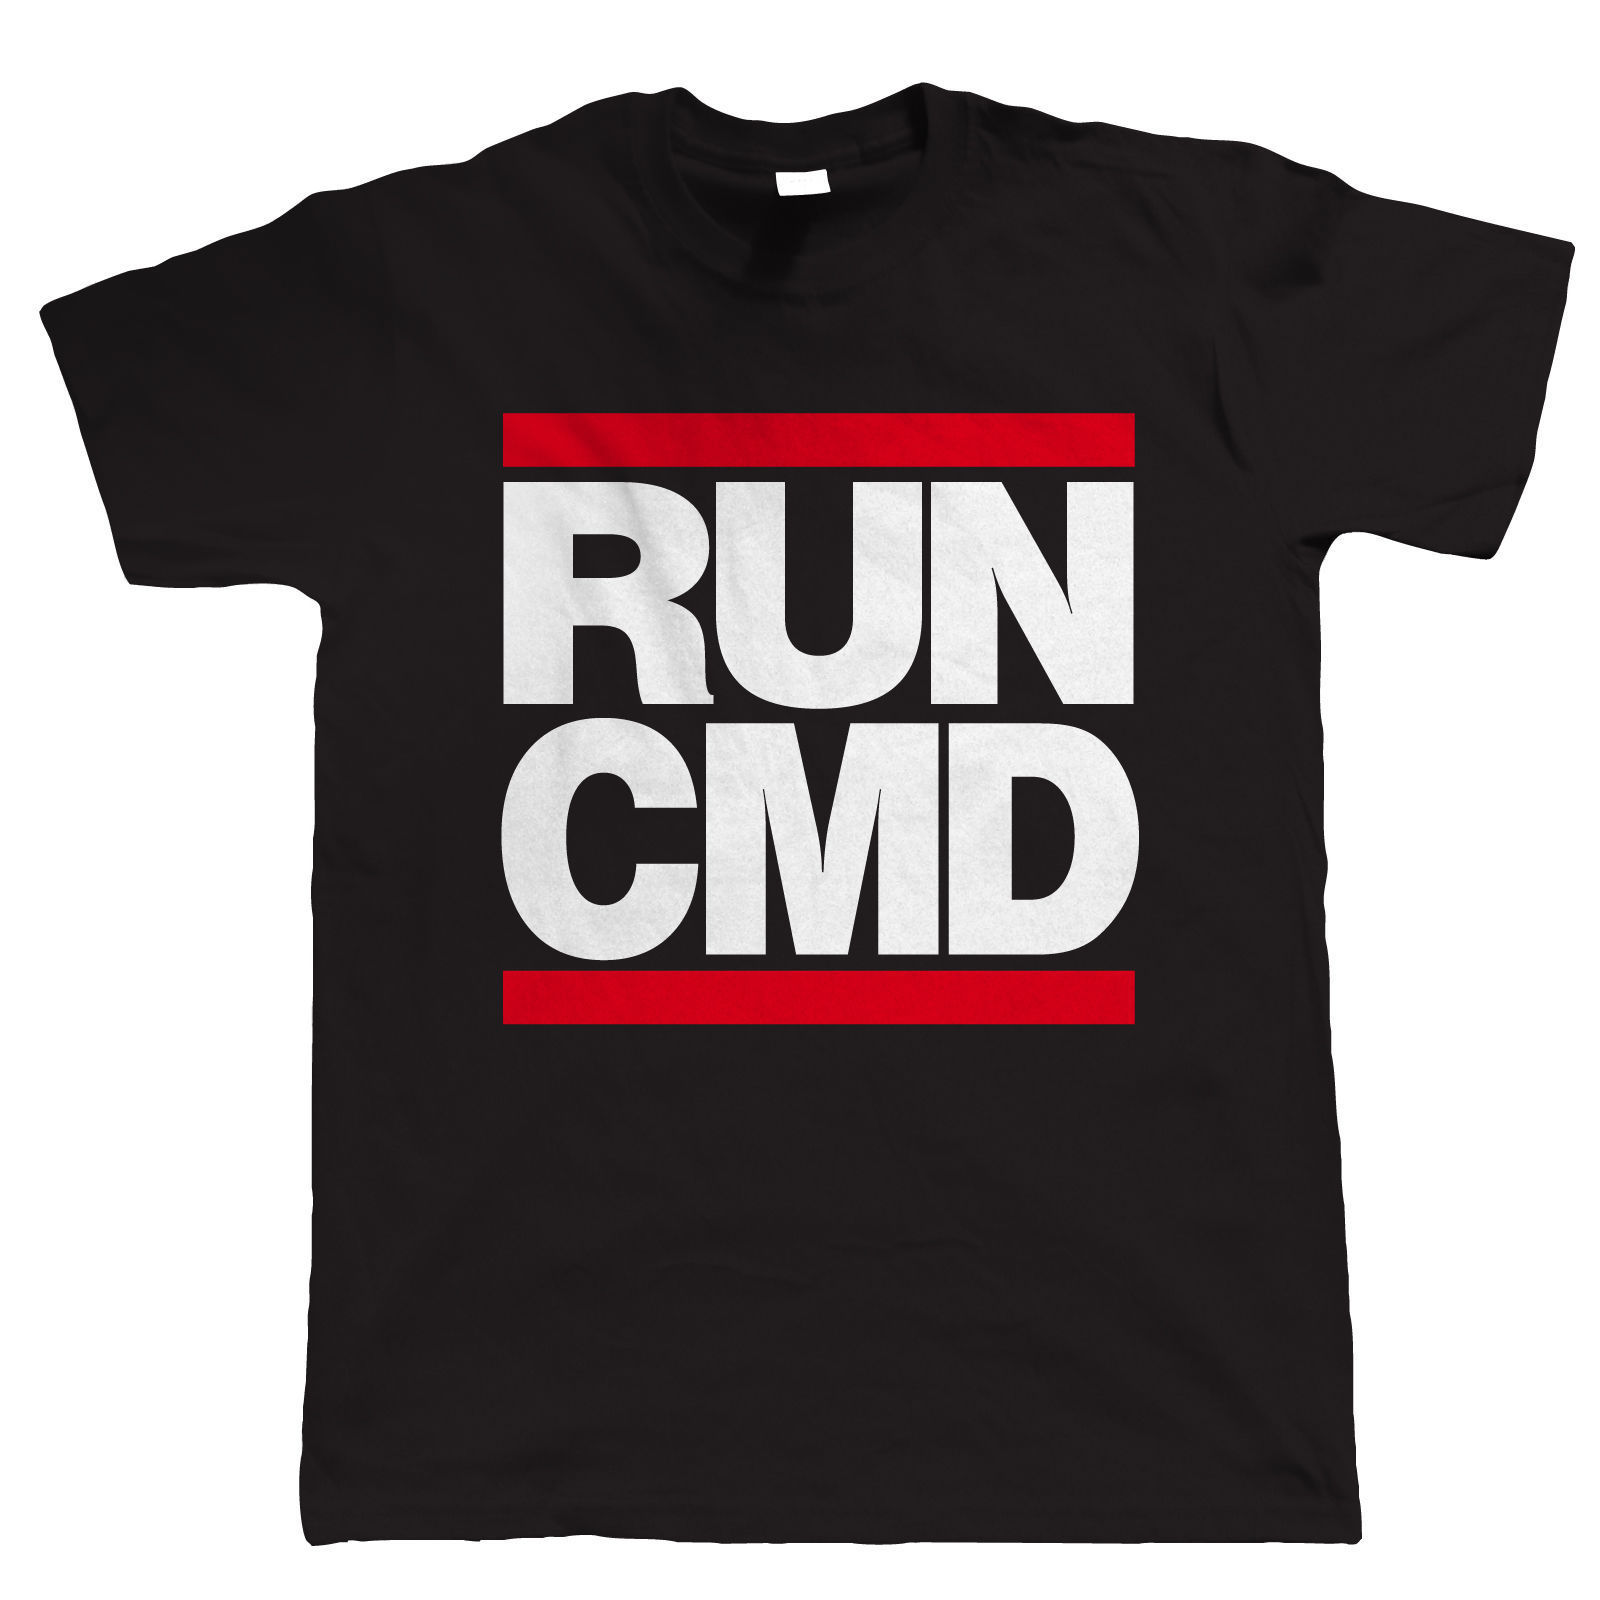 RUNER CMD Web Developer PC Gamer Geek T Shirt New Short Sleeve Round Collar Mens T-Shirt ...